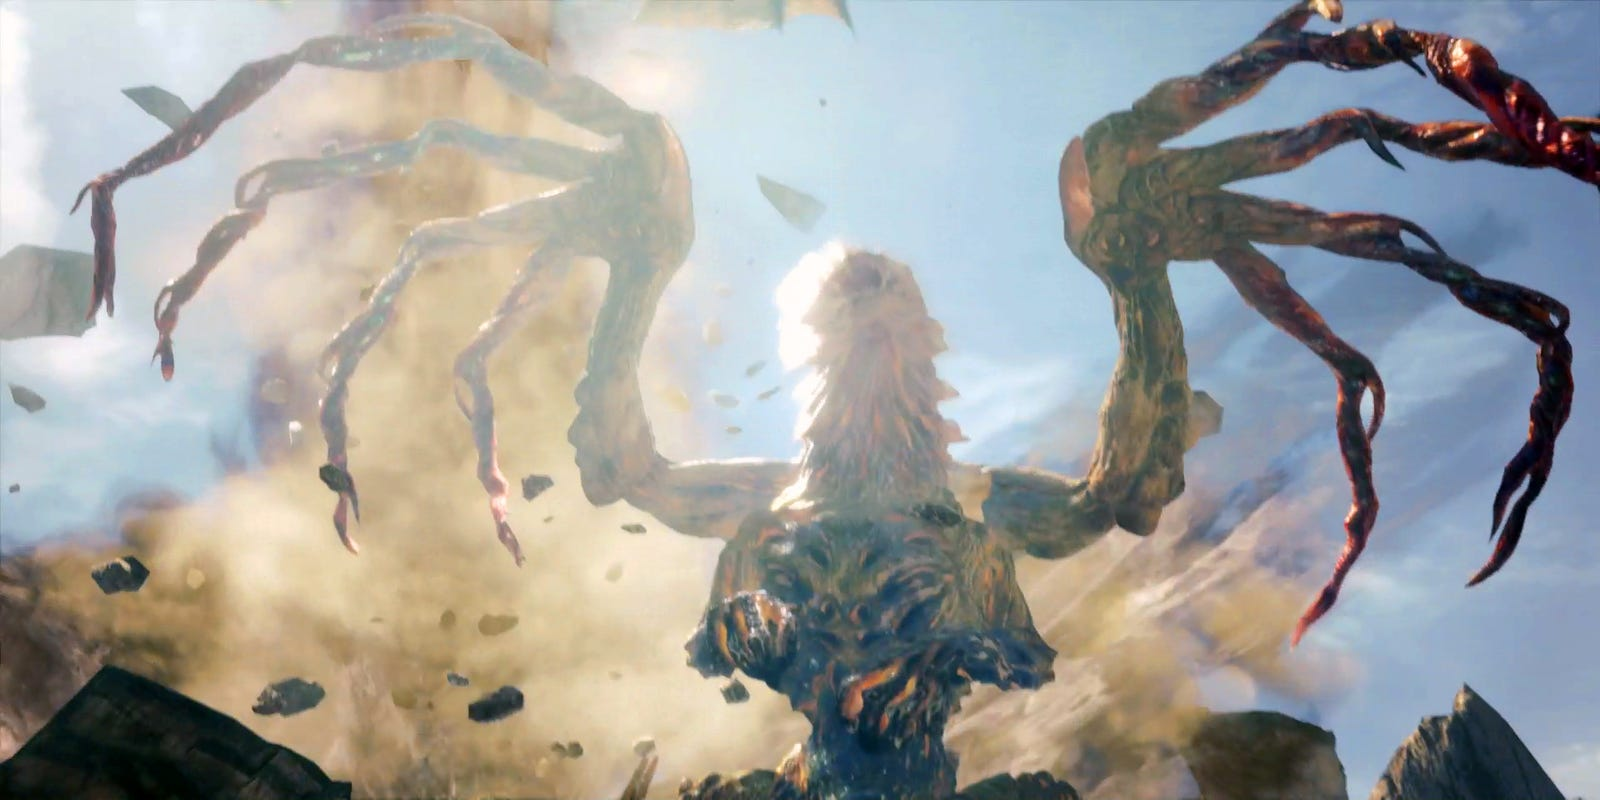 Shara Ishvalda Made Easy How To Cheese Er Beat Iceborne S Main Boss Technobubble The shara ishvalda is the target of the quest paean of guidance in iceborne, and they're definitely no joke. shara ishvalda made easy how to cheese